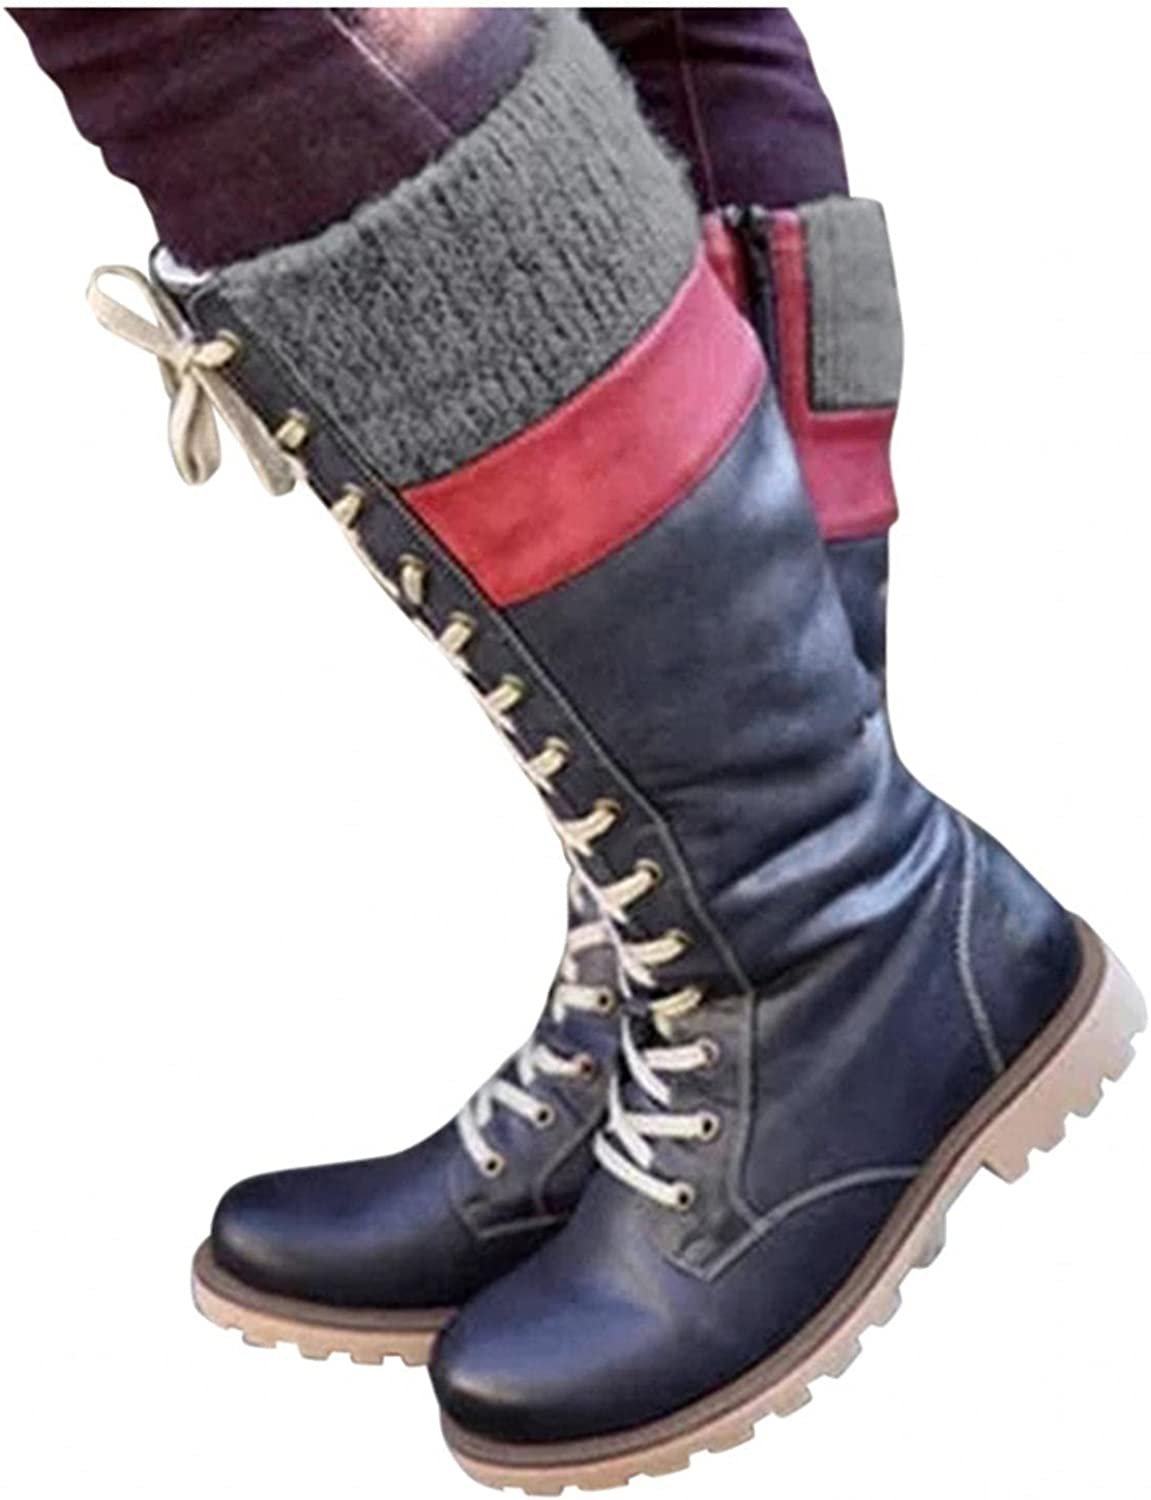 Xudanell Booties for Women Knee High Outdoor Snow Boots Platform Winter Warm Hiking Boots Leather Lace Up Womens Boots